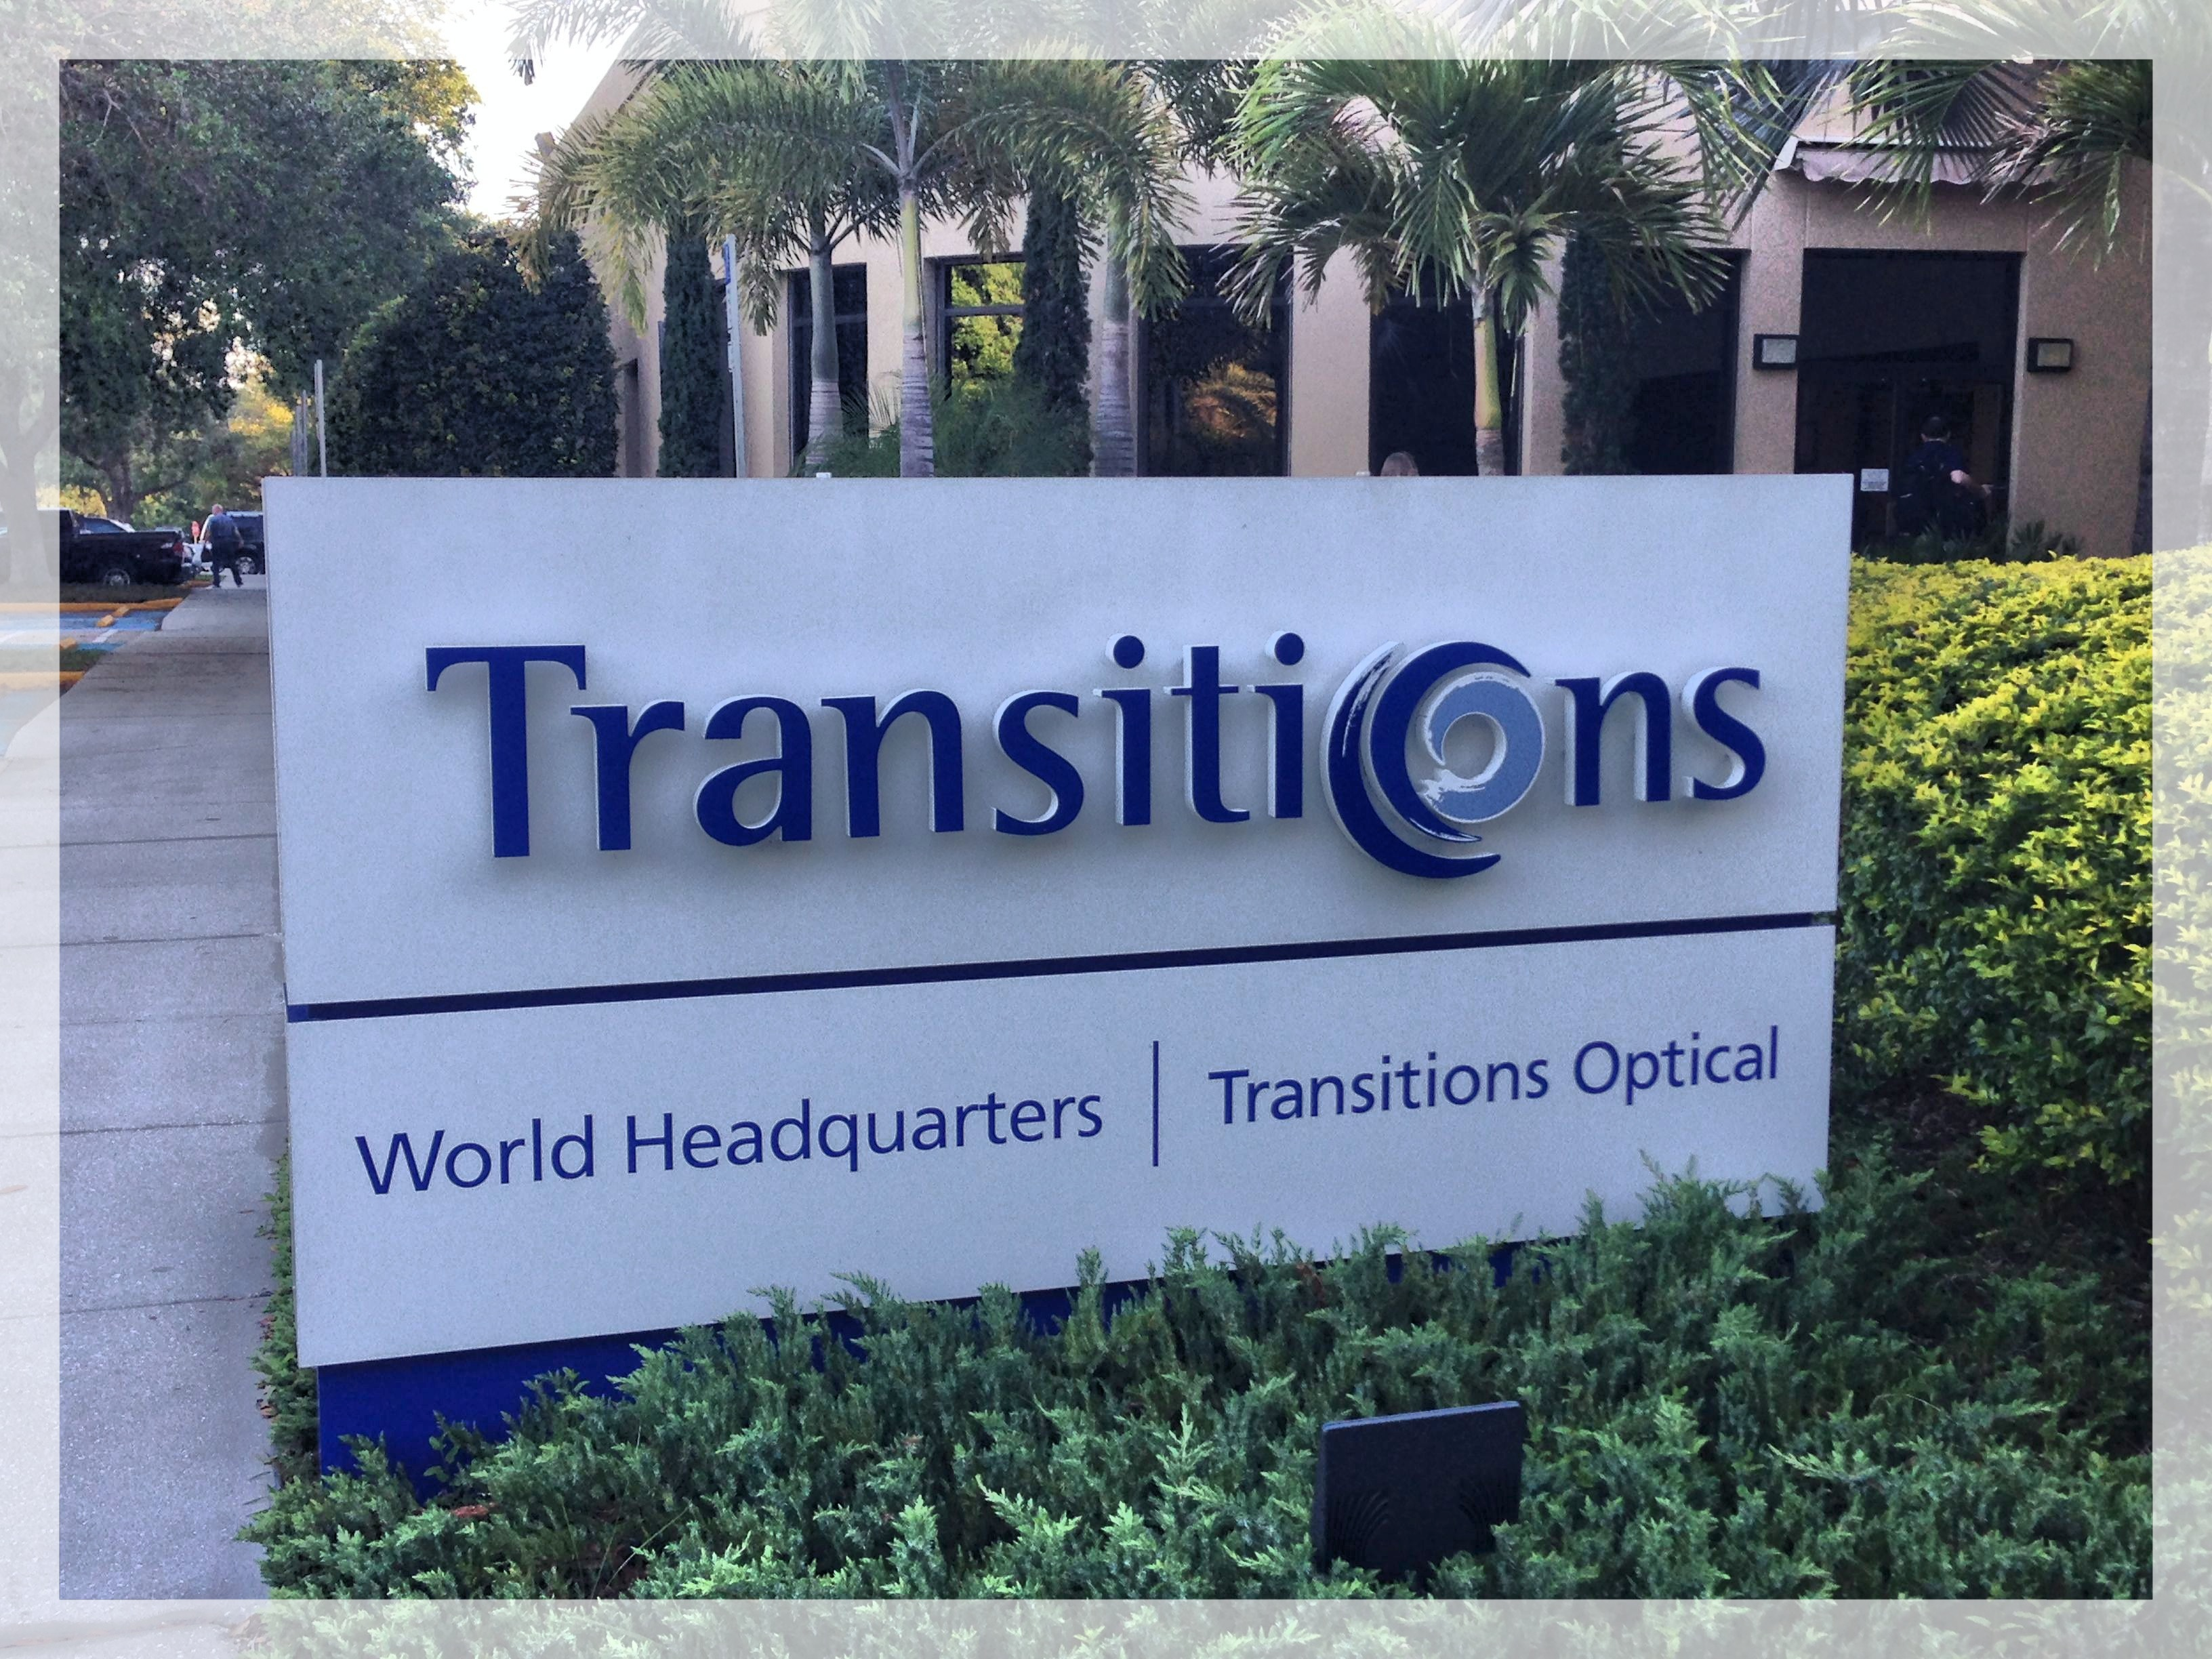 Transitions Optical World Headquarters